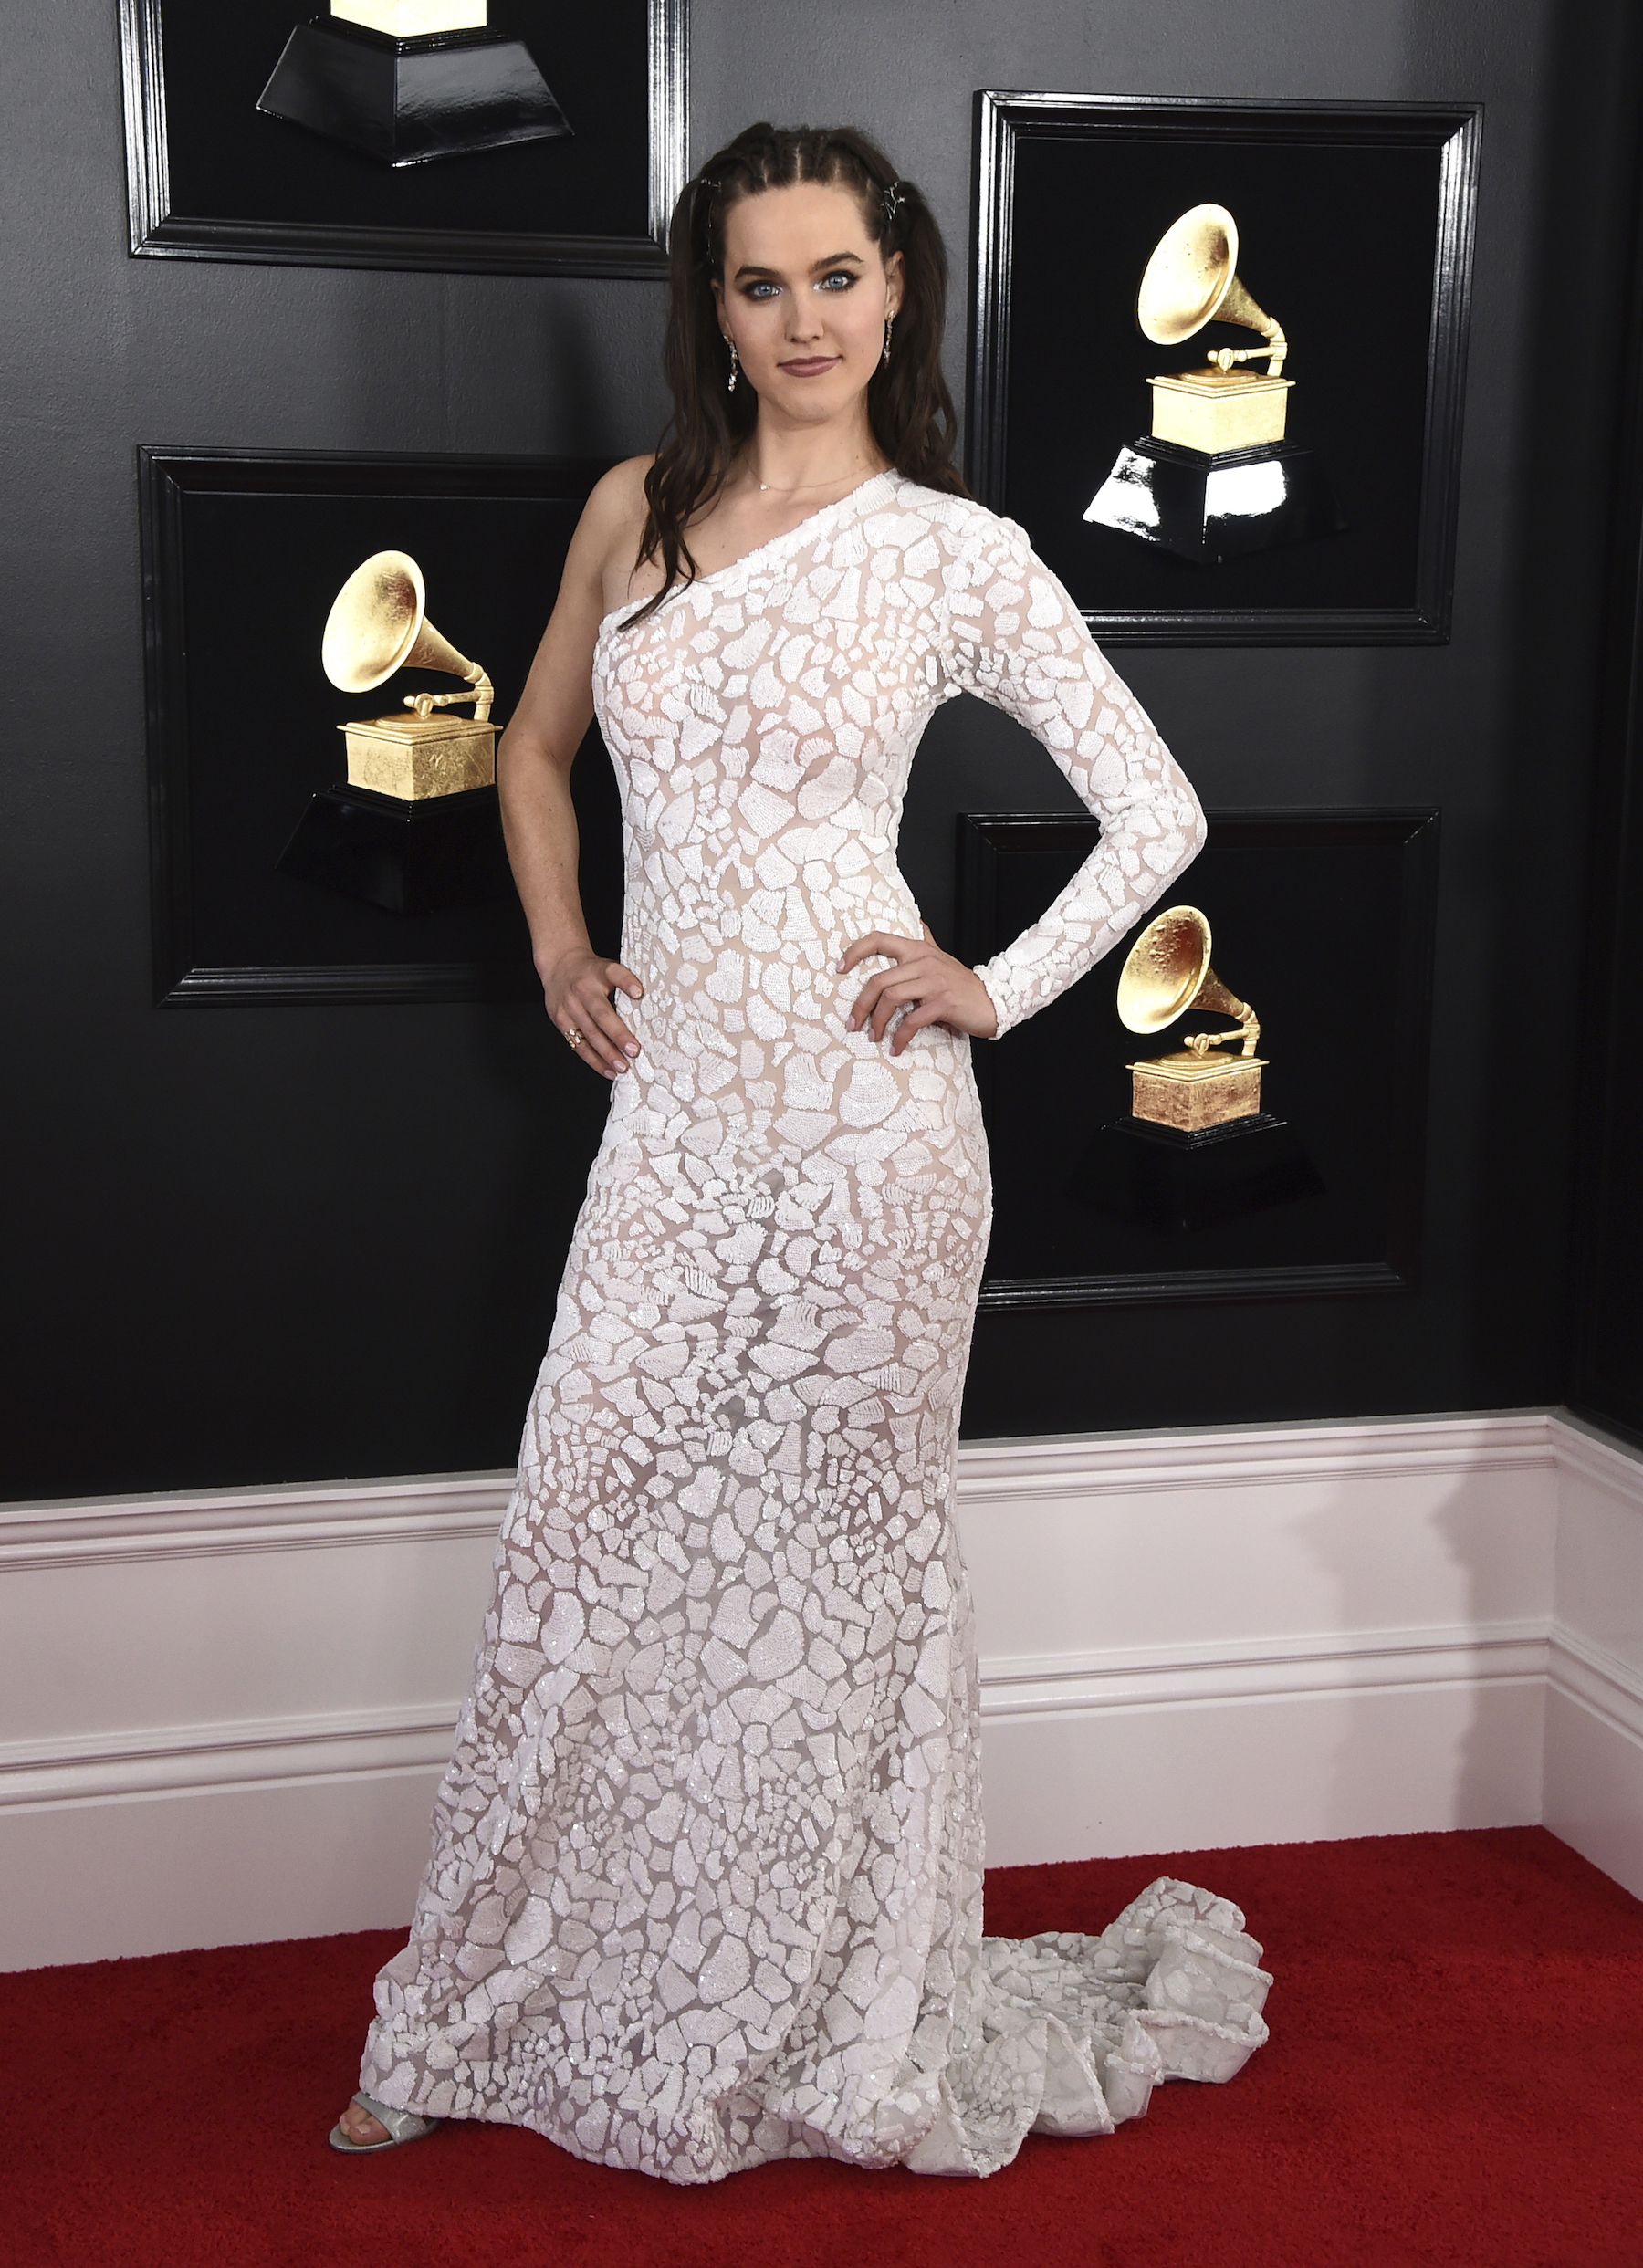 <div class='meta'><div class='origin-logo' data-origin='AP'></div><span class='caption-text' data-credit='Jordan Strauss/Invision/AP'>Sophie Hawley-Weld of Sofi Tukker arrives at the 61st annual Grammy Awards at the Staples Center on Sunday, Feb. 10, 2019, in Los Angeles.</span></div>